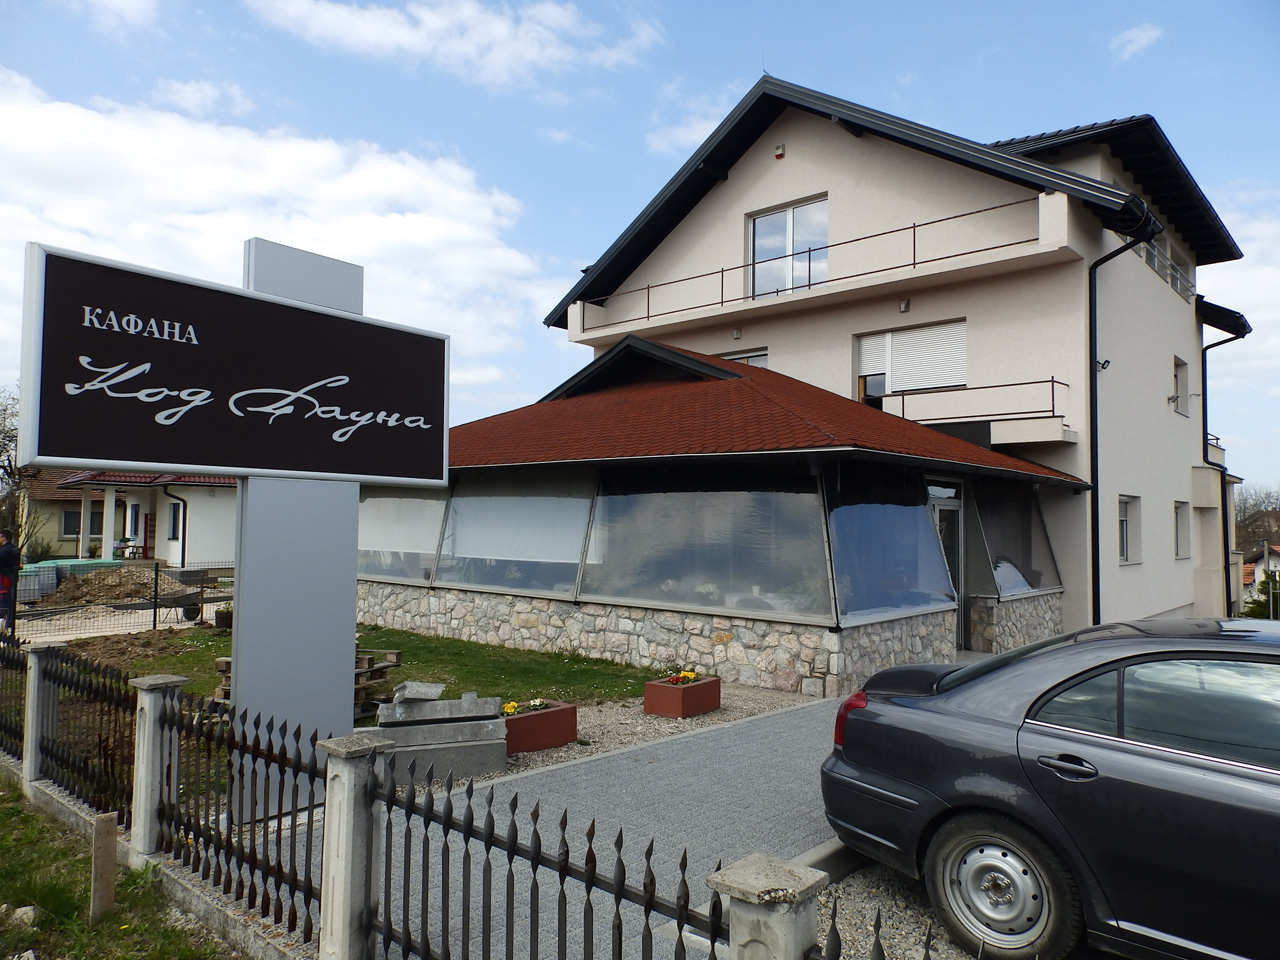 TAVERN KOD PAUNA Restaurants Loznica - Photo 1